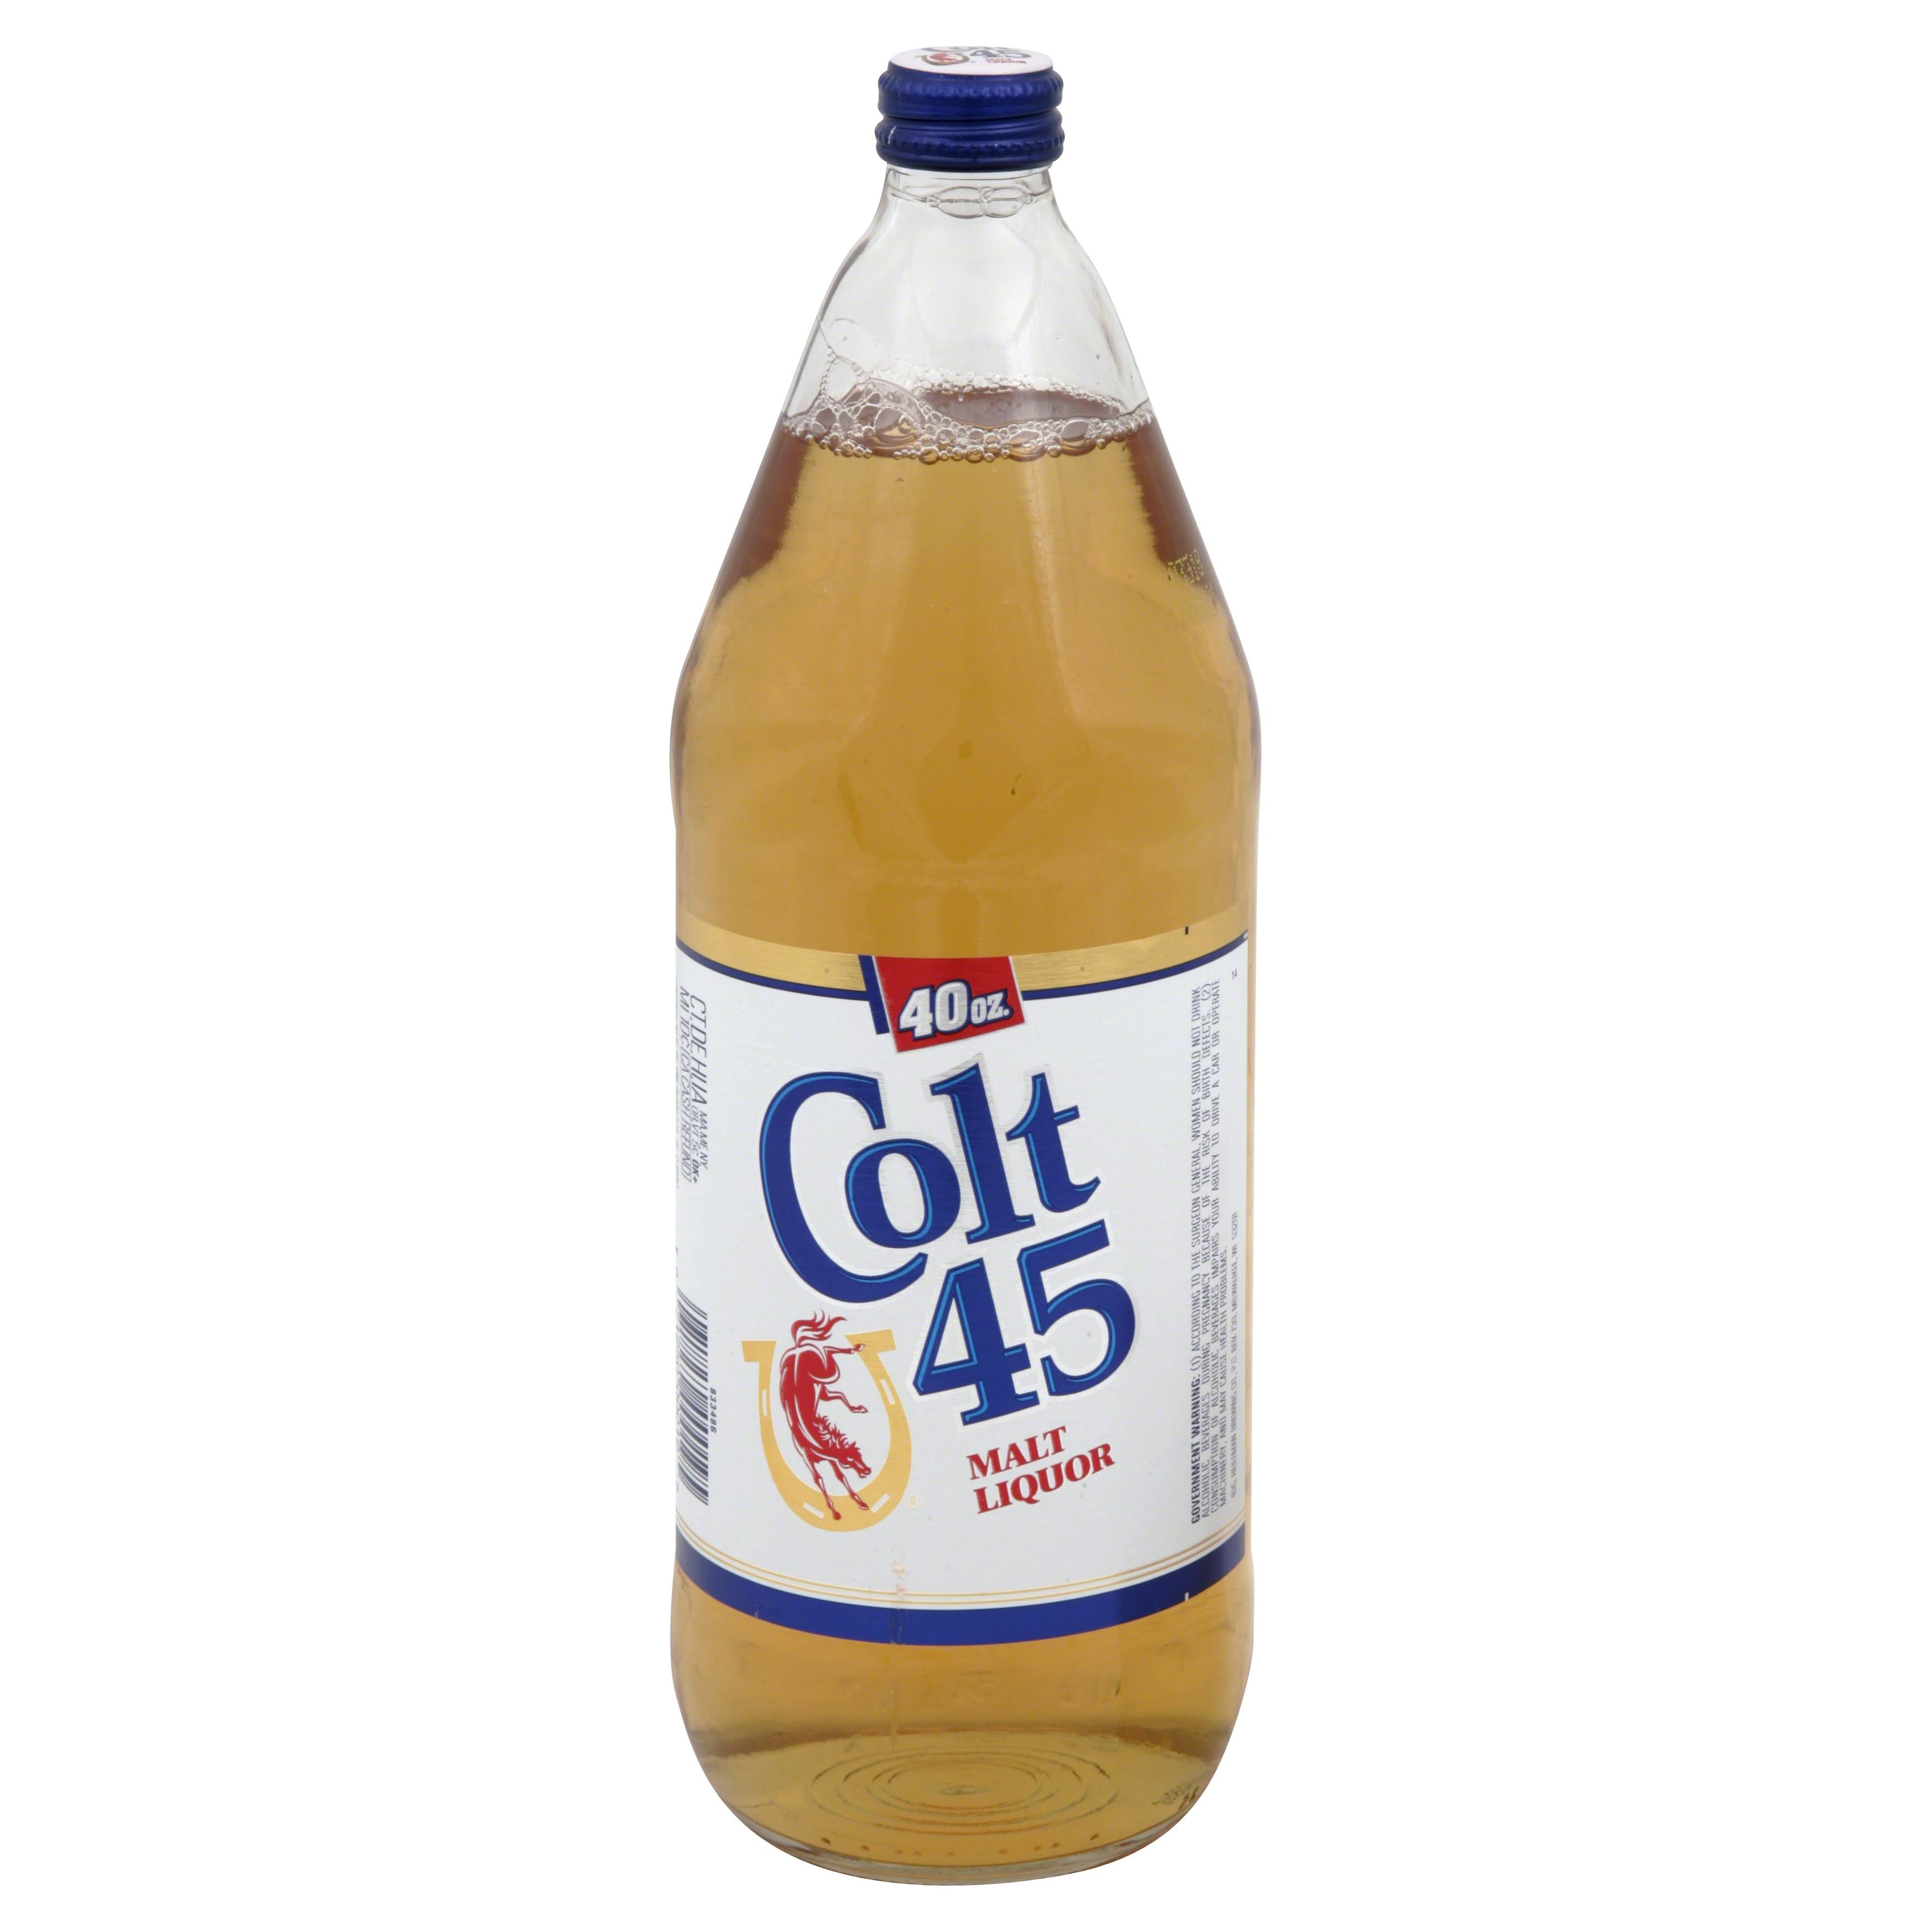 Colt 45 Malt Liquor - 40 fl oz